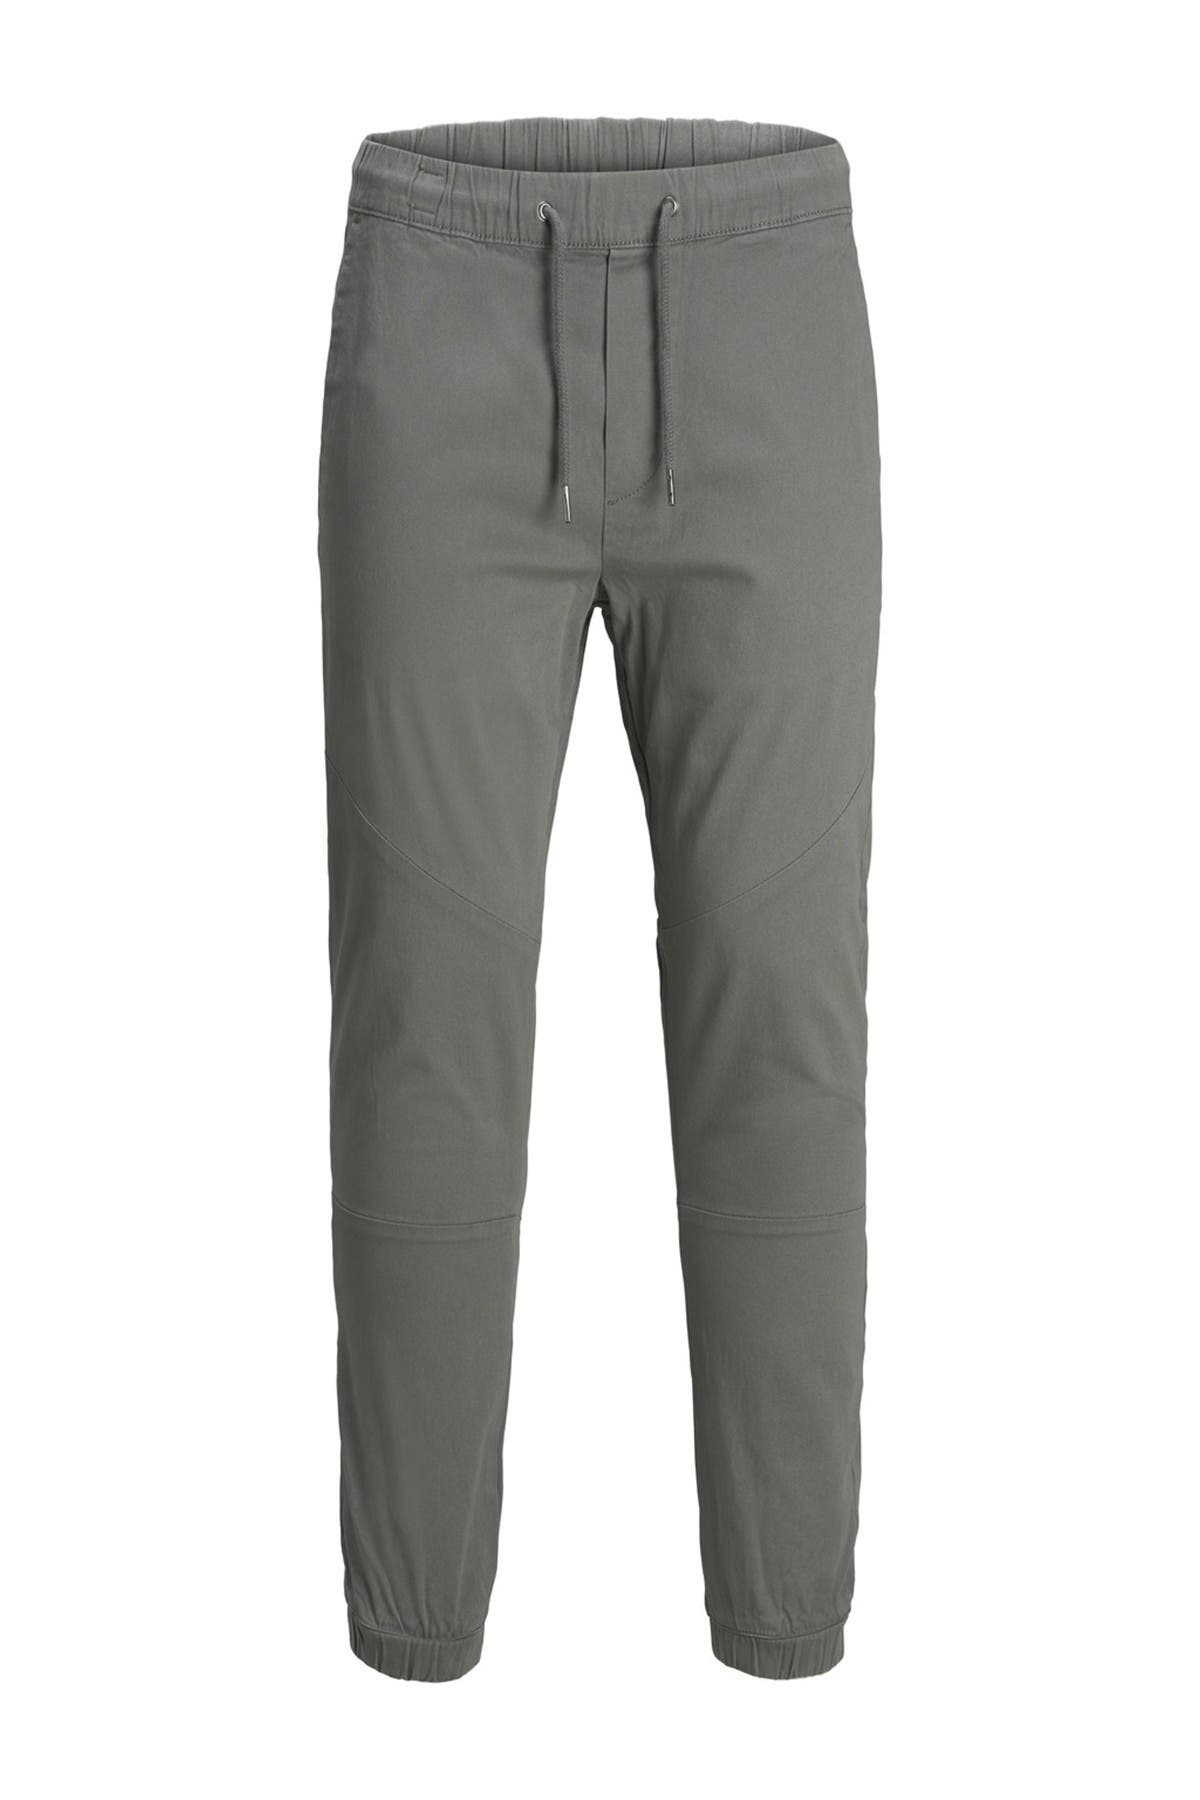 Image of JACK & JONES Jivega Athletic Fit Jogger Pants